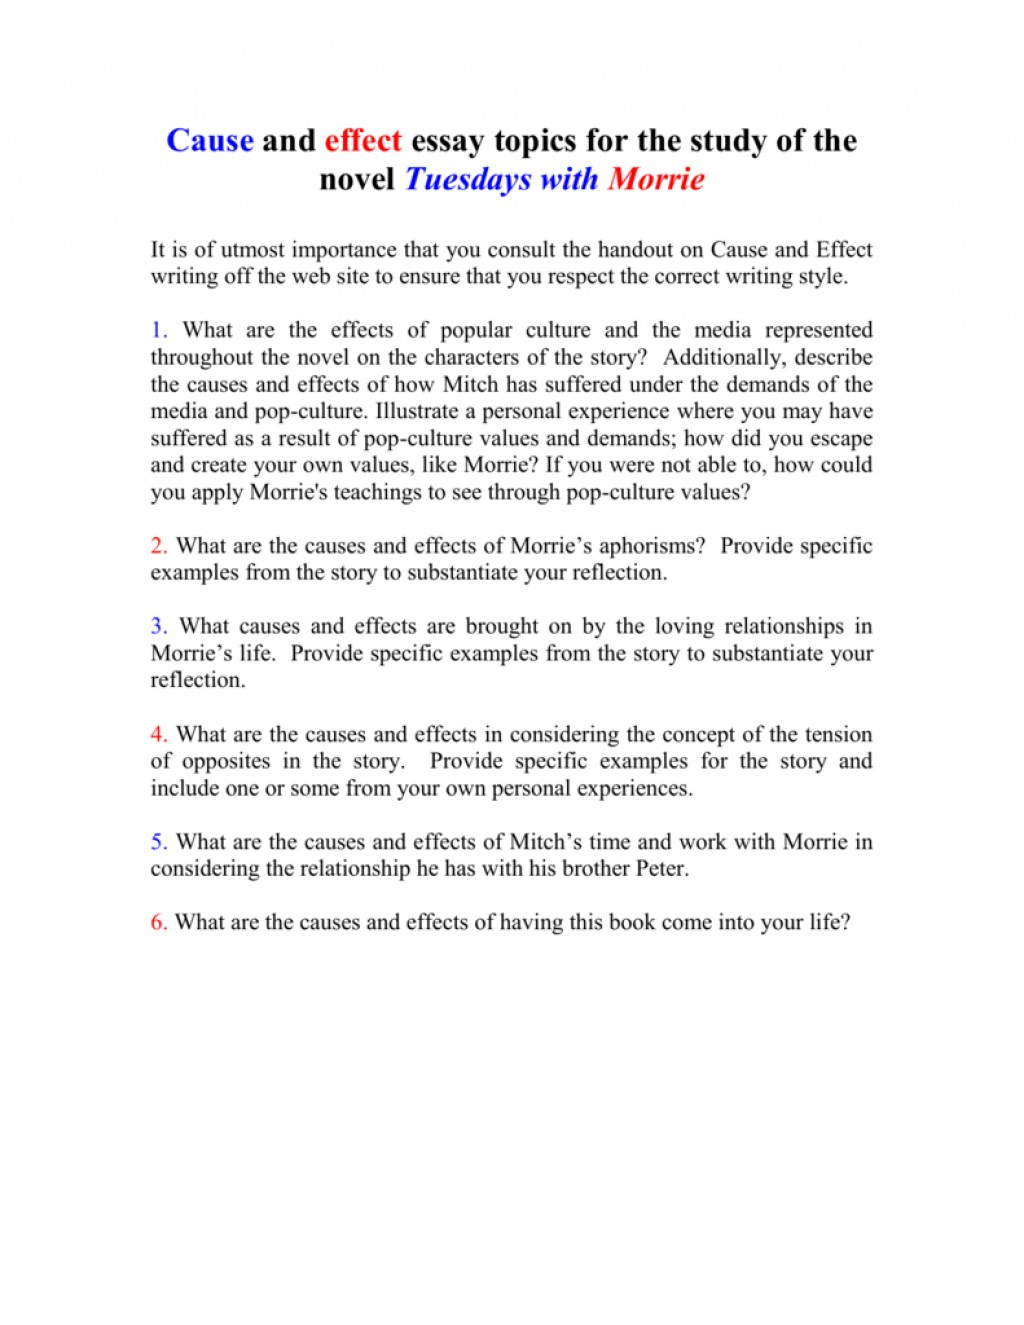 013 Essay Example On Tuesdays With Morrie 008010712 1 Unusual Analytical Reflection Paper Argumentative Large